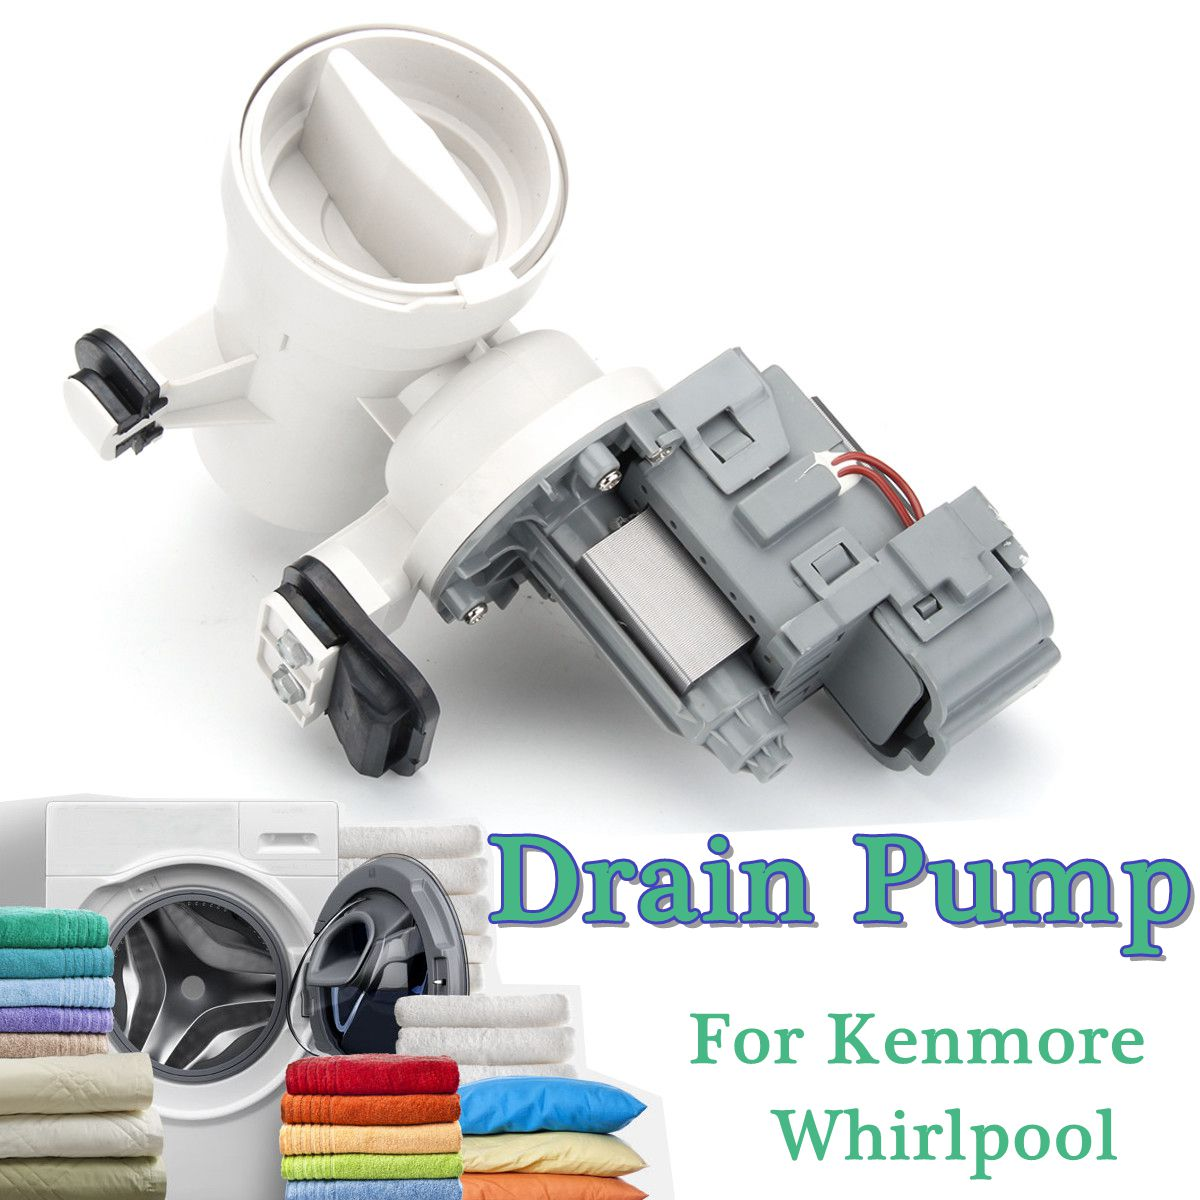 Water Drain Pump W10730972 8540024 W10130913 Washing Machine For Kenmore Whirlpool